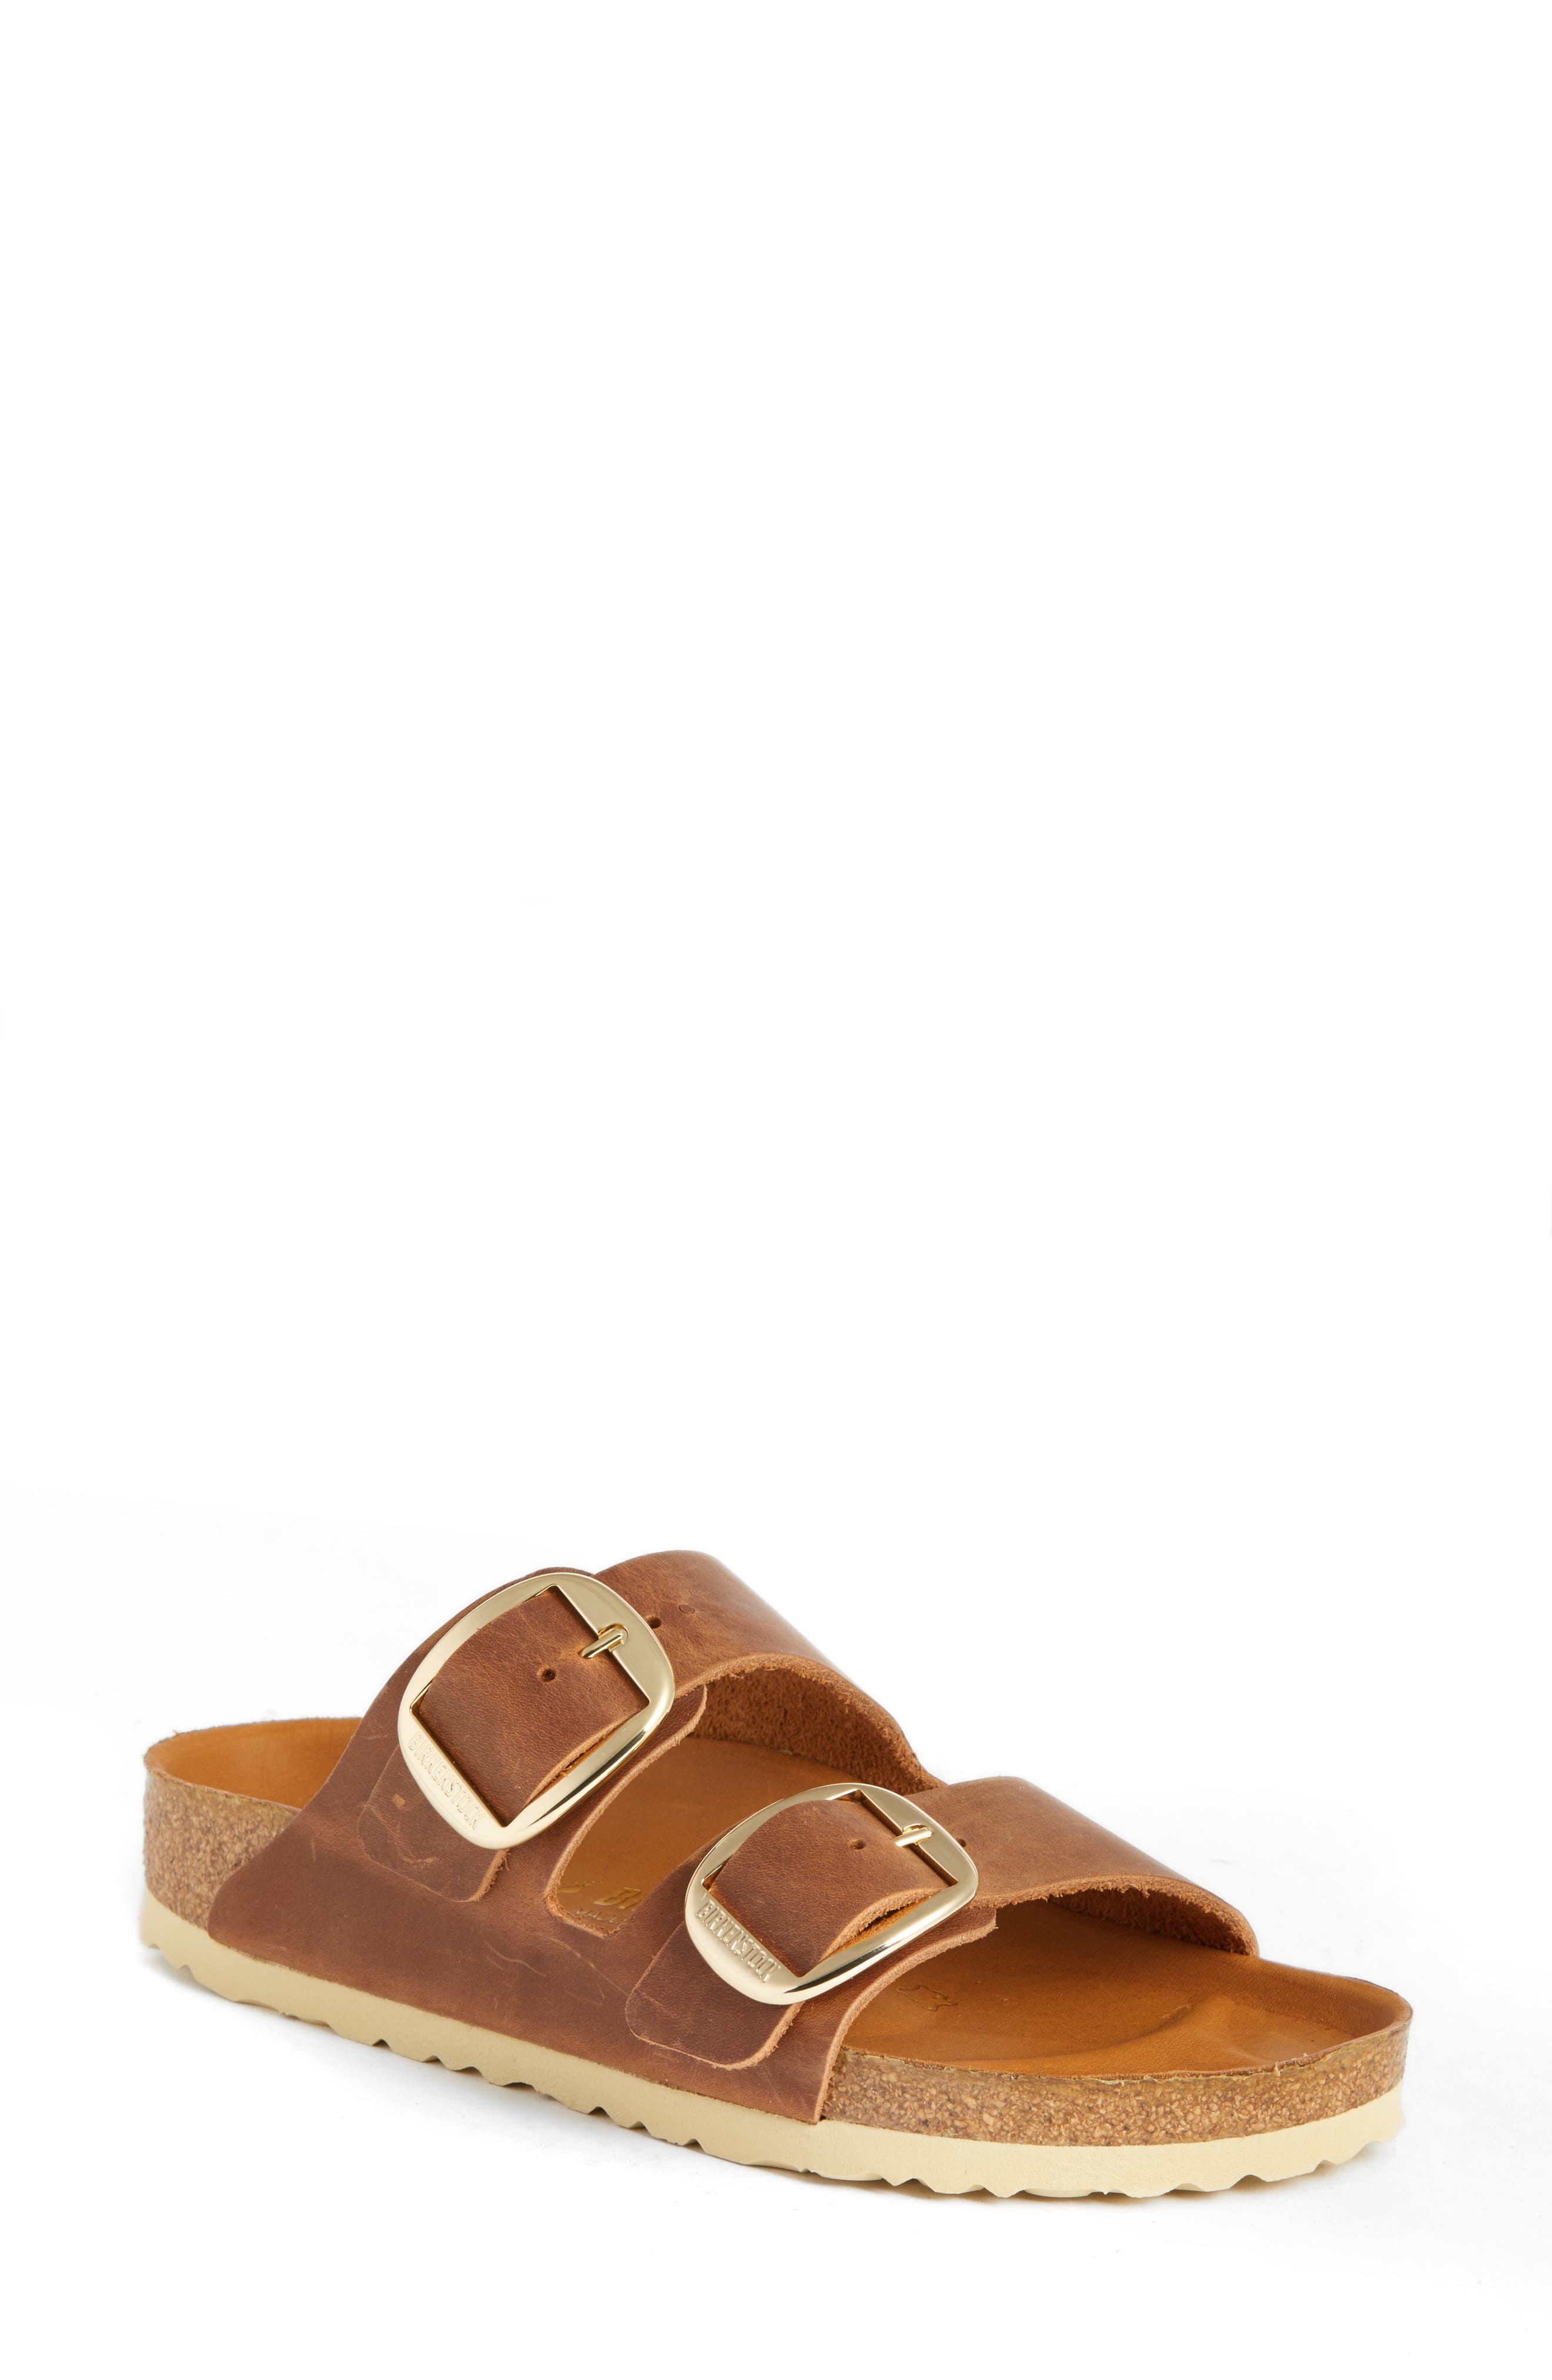 Birkenstock Arizona Big Buckle Slide Sandal (Women)